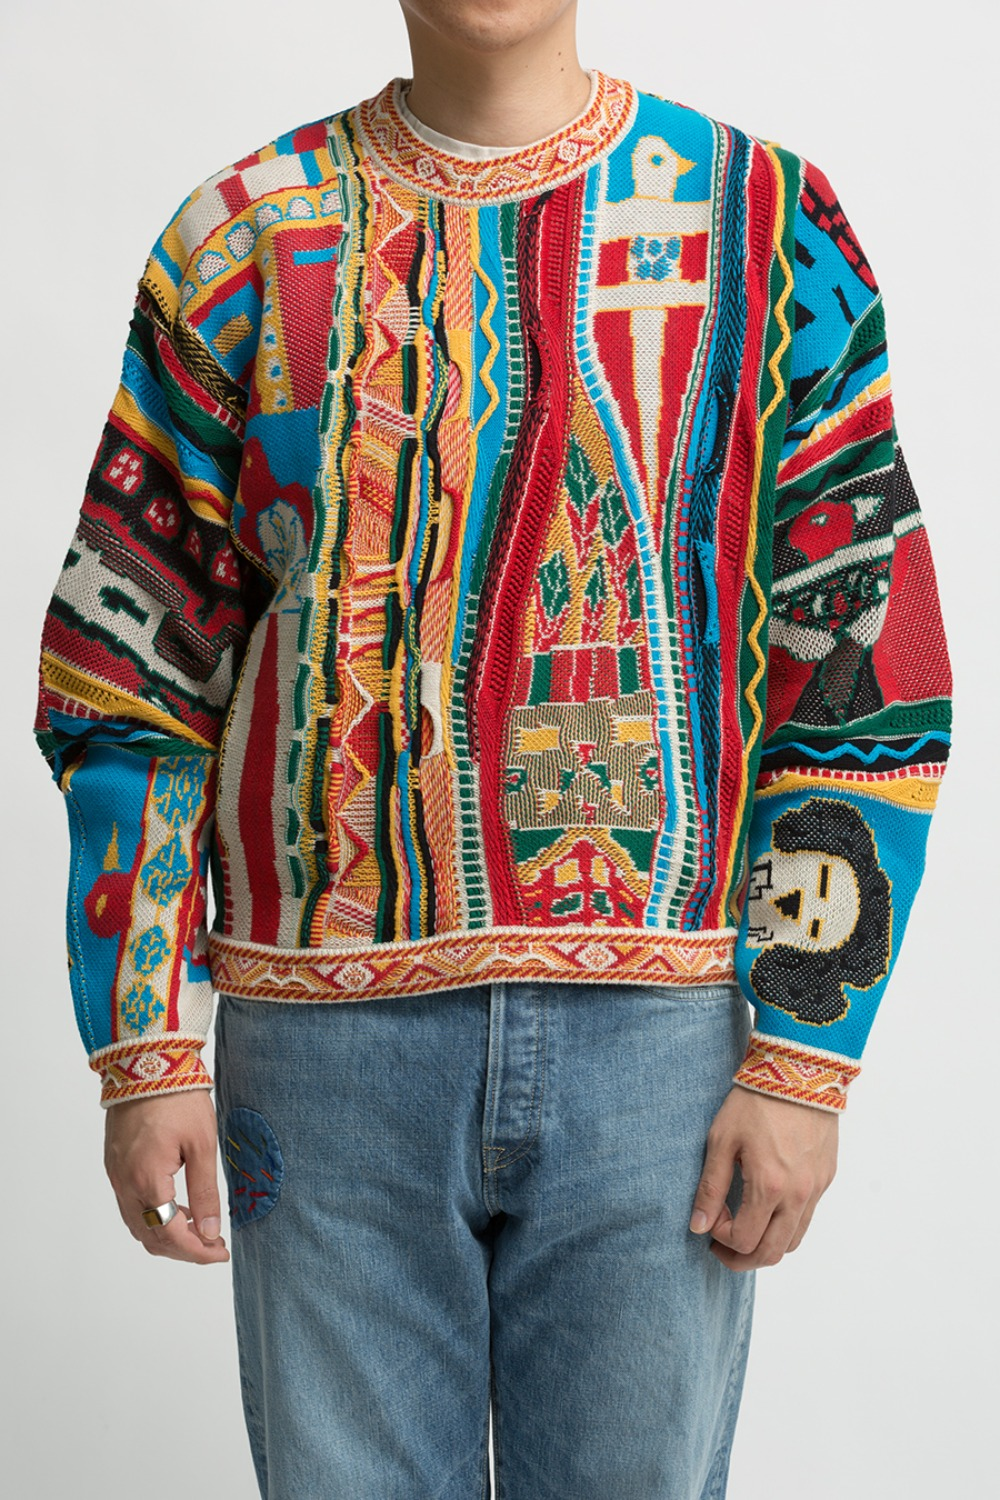 7G KACHINA GAUDY CREW SWEATER(EK-985)